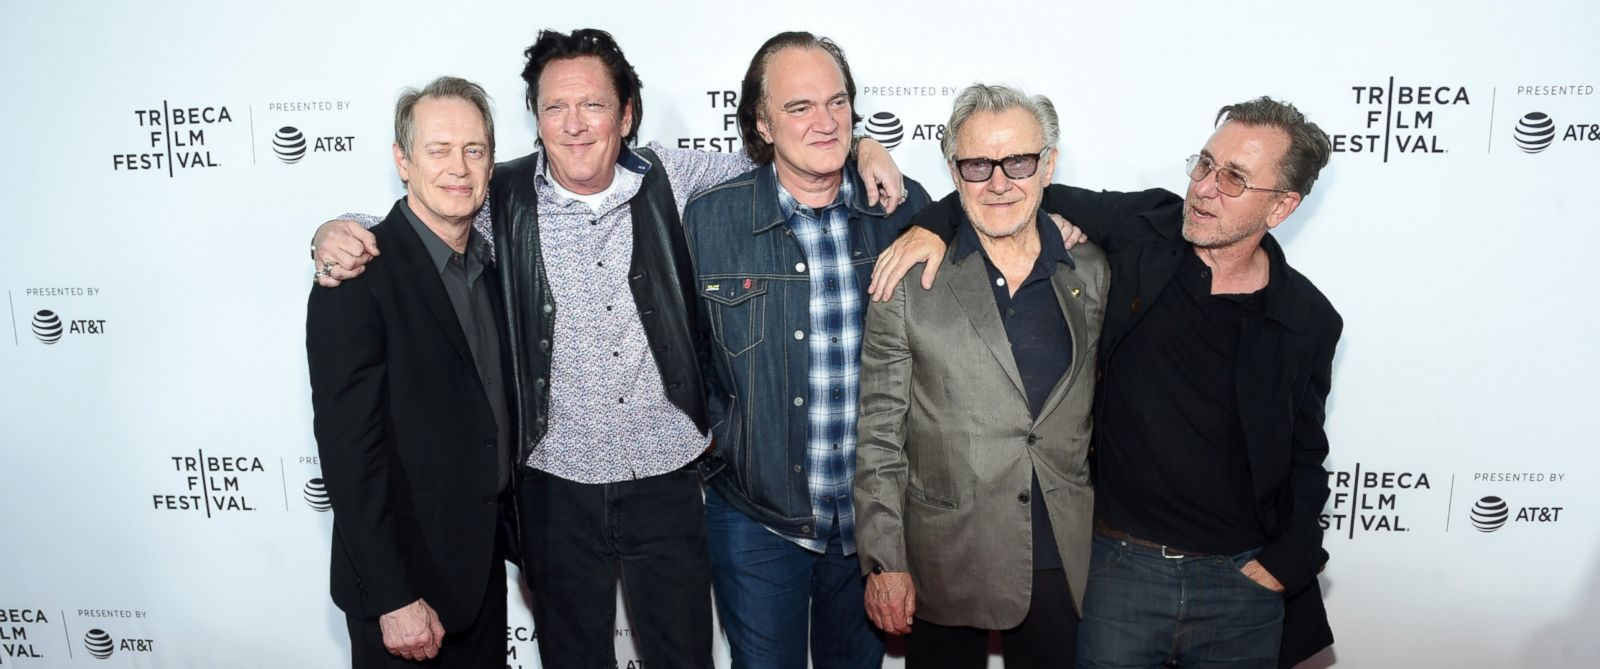 "PHOTO: Steve Buscemi, Michael Madsen, Quentin Tarantino, Harvey Keitel and Tim Roth attend the ""Reservoir Dogs"" Screening during 2017 Tribeca Film Festival, April 28, 2017 in New York City."